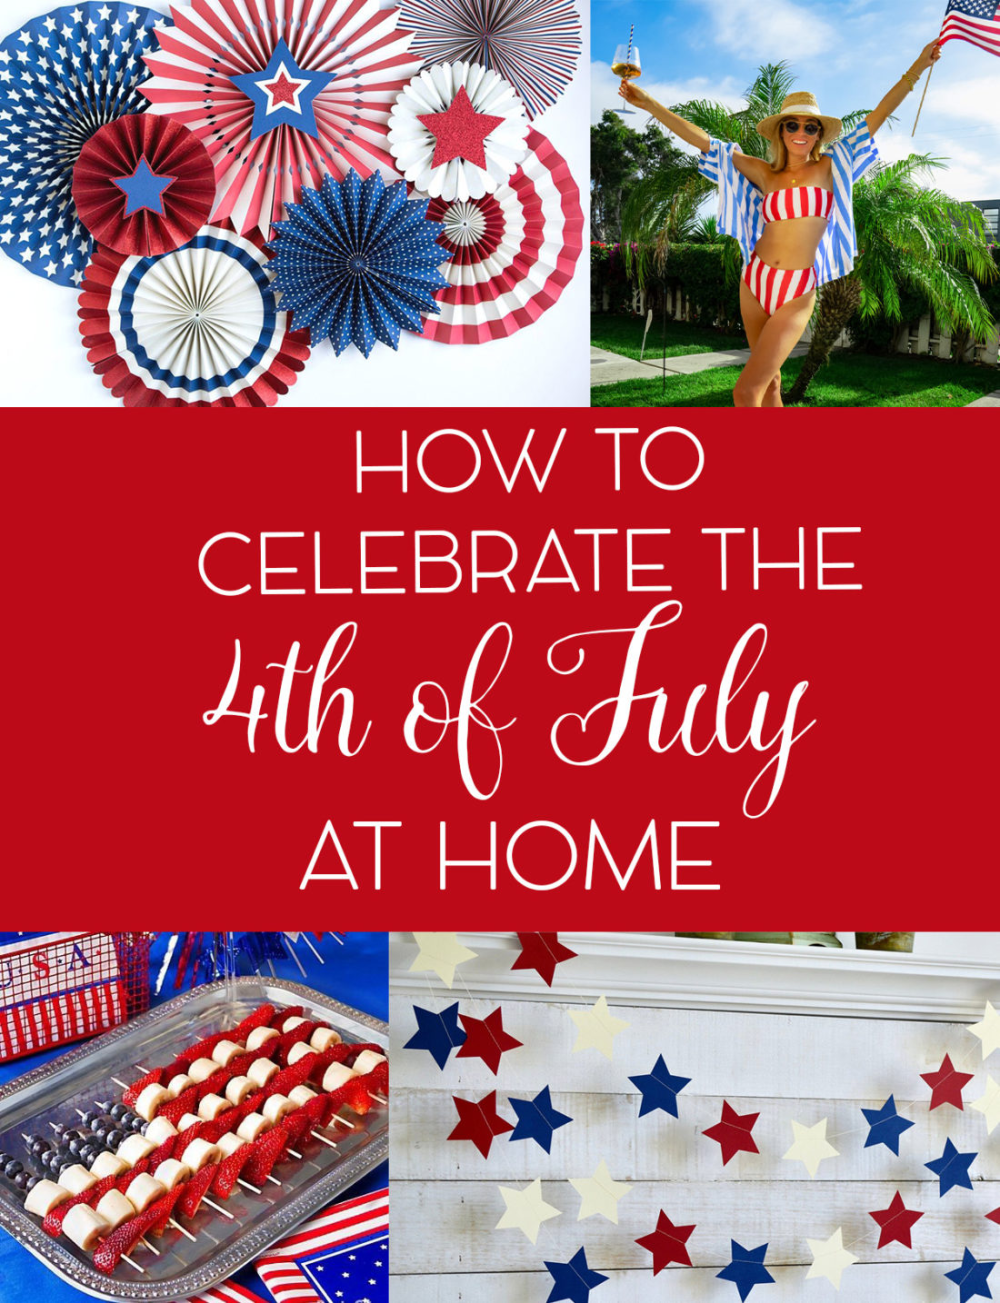 Pin on Bon Appétit 4th of July 2020 Celebration